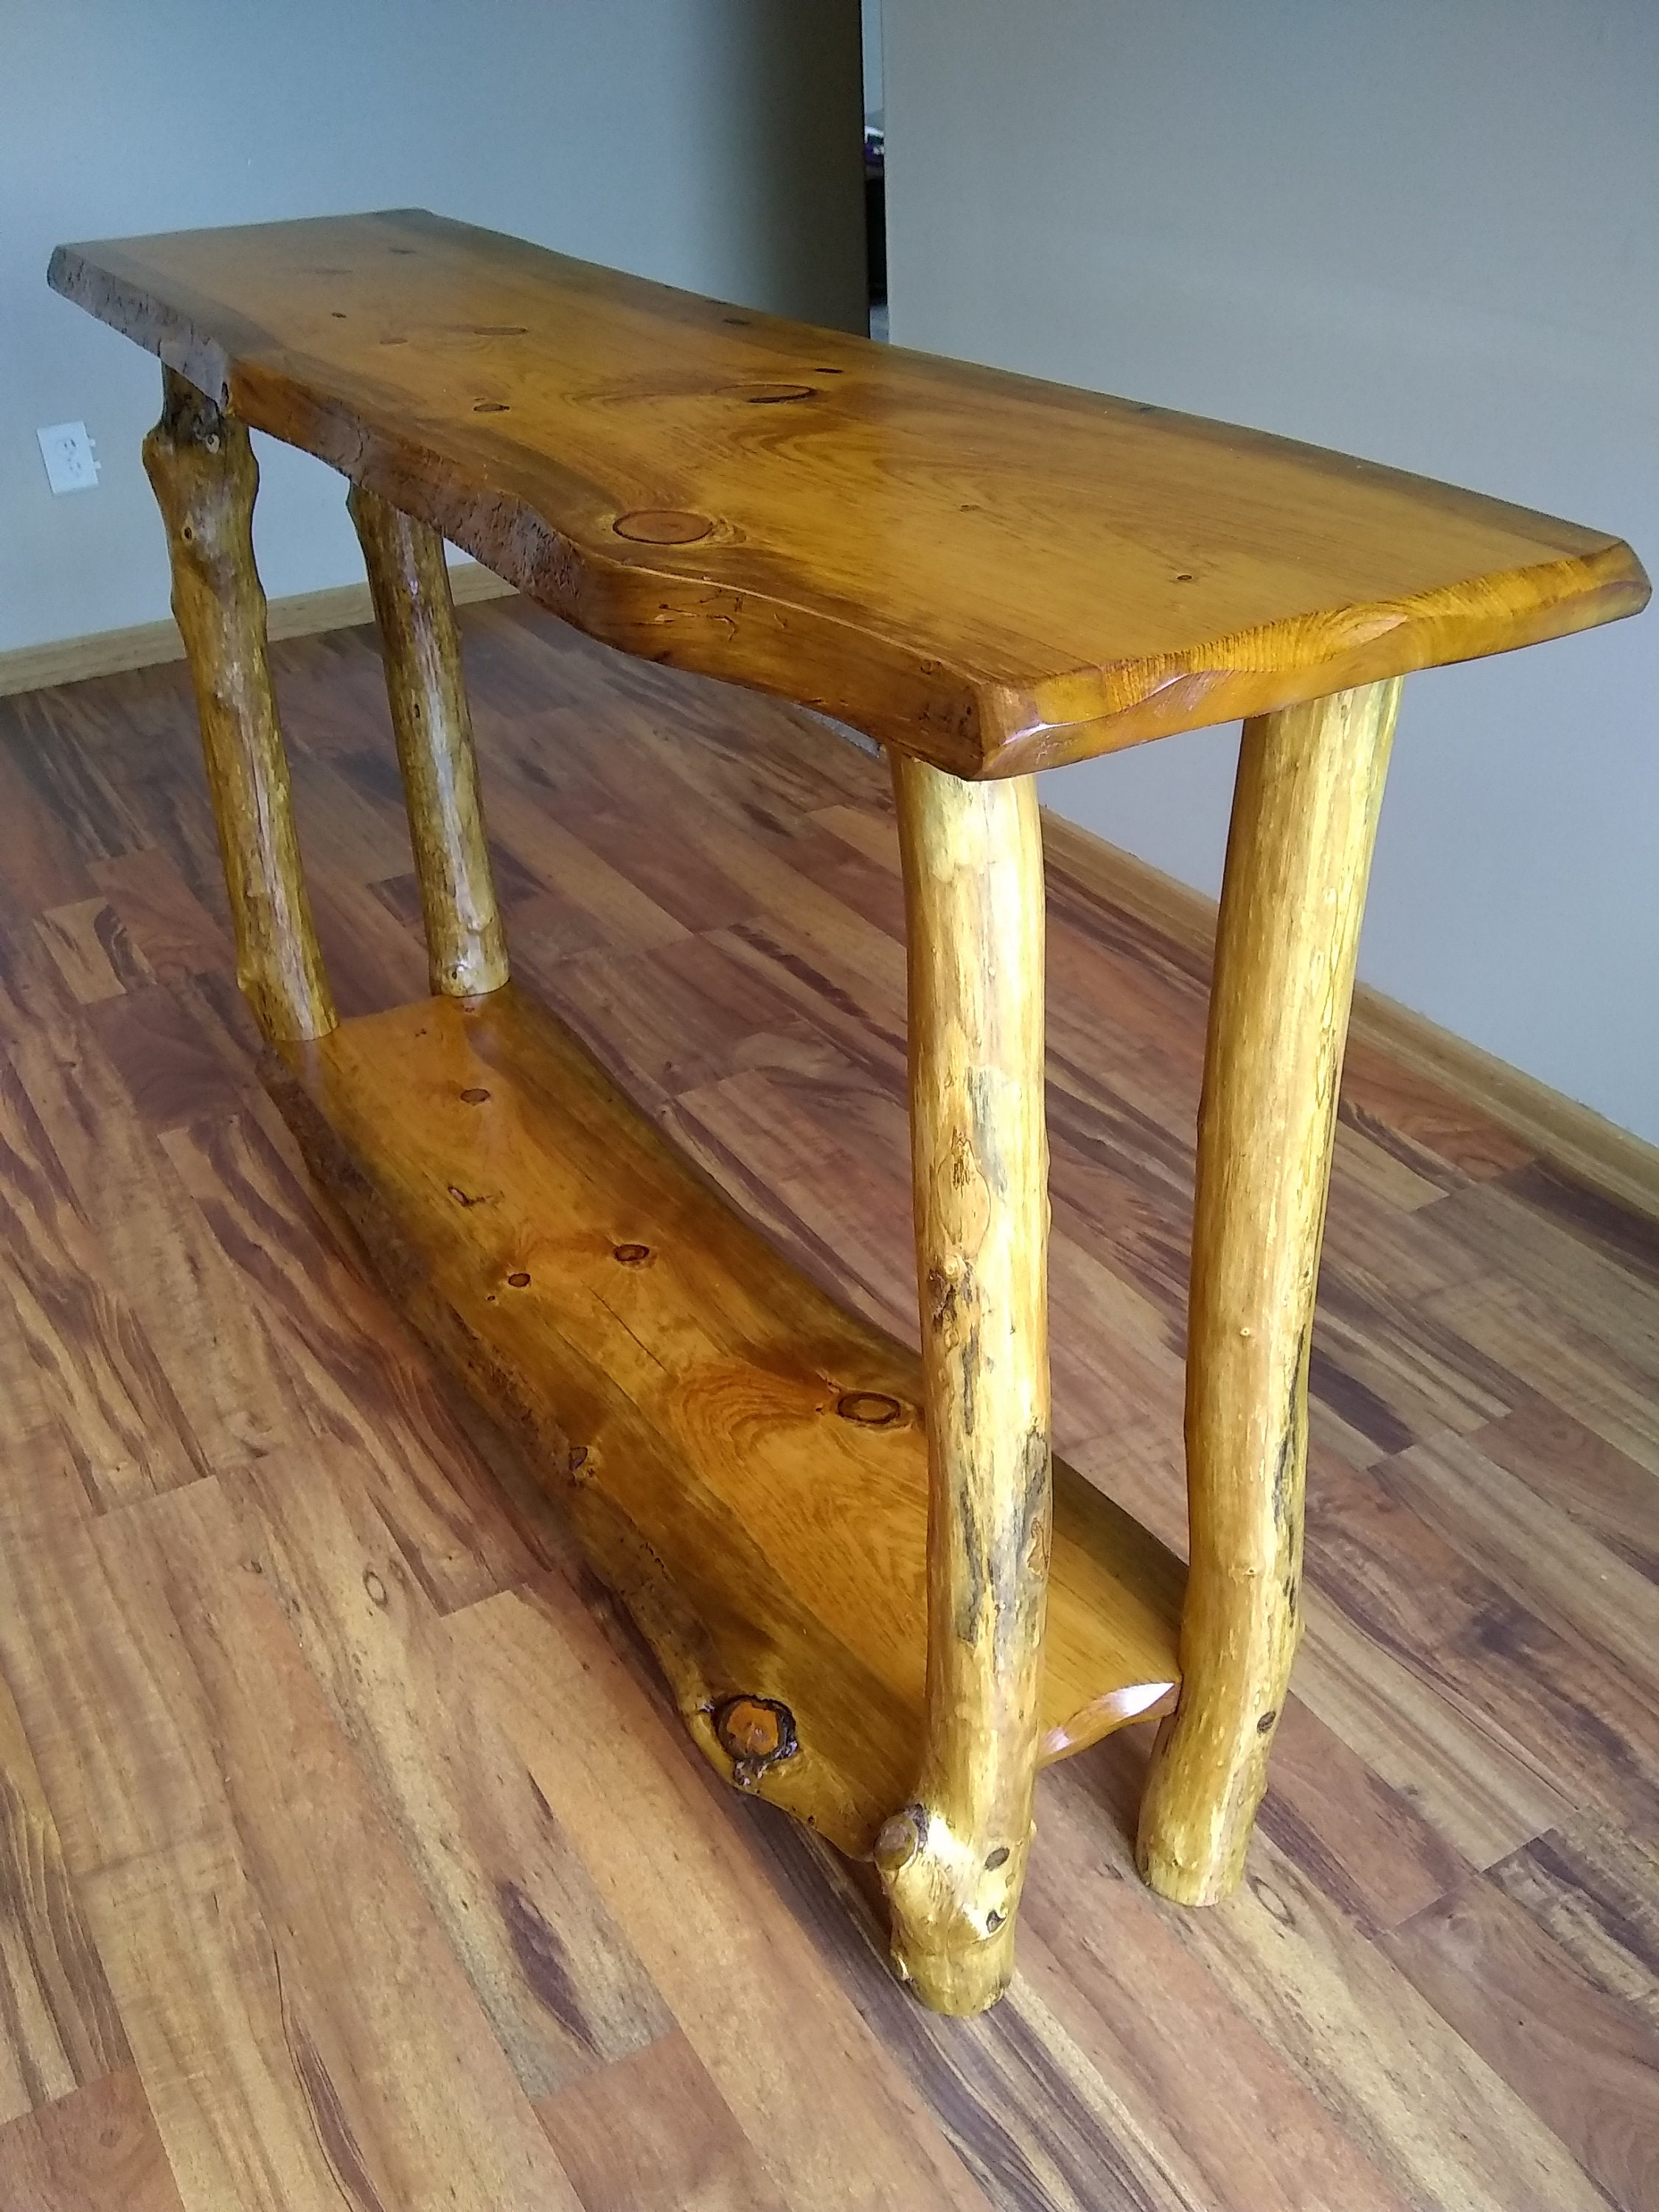 Prime Live Edge Console Table Live Edge Sofa Table Live Edge Entryway Table Console Table Hall Way Table Rustic Sofa Tabla Log Sofa Table Alphanode Cool Chair Designs And Ideas Alphanodeonline